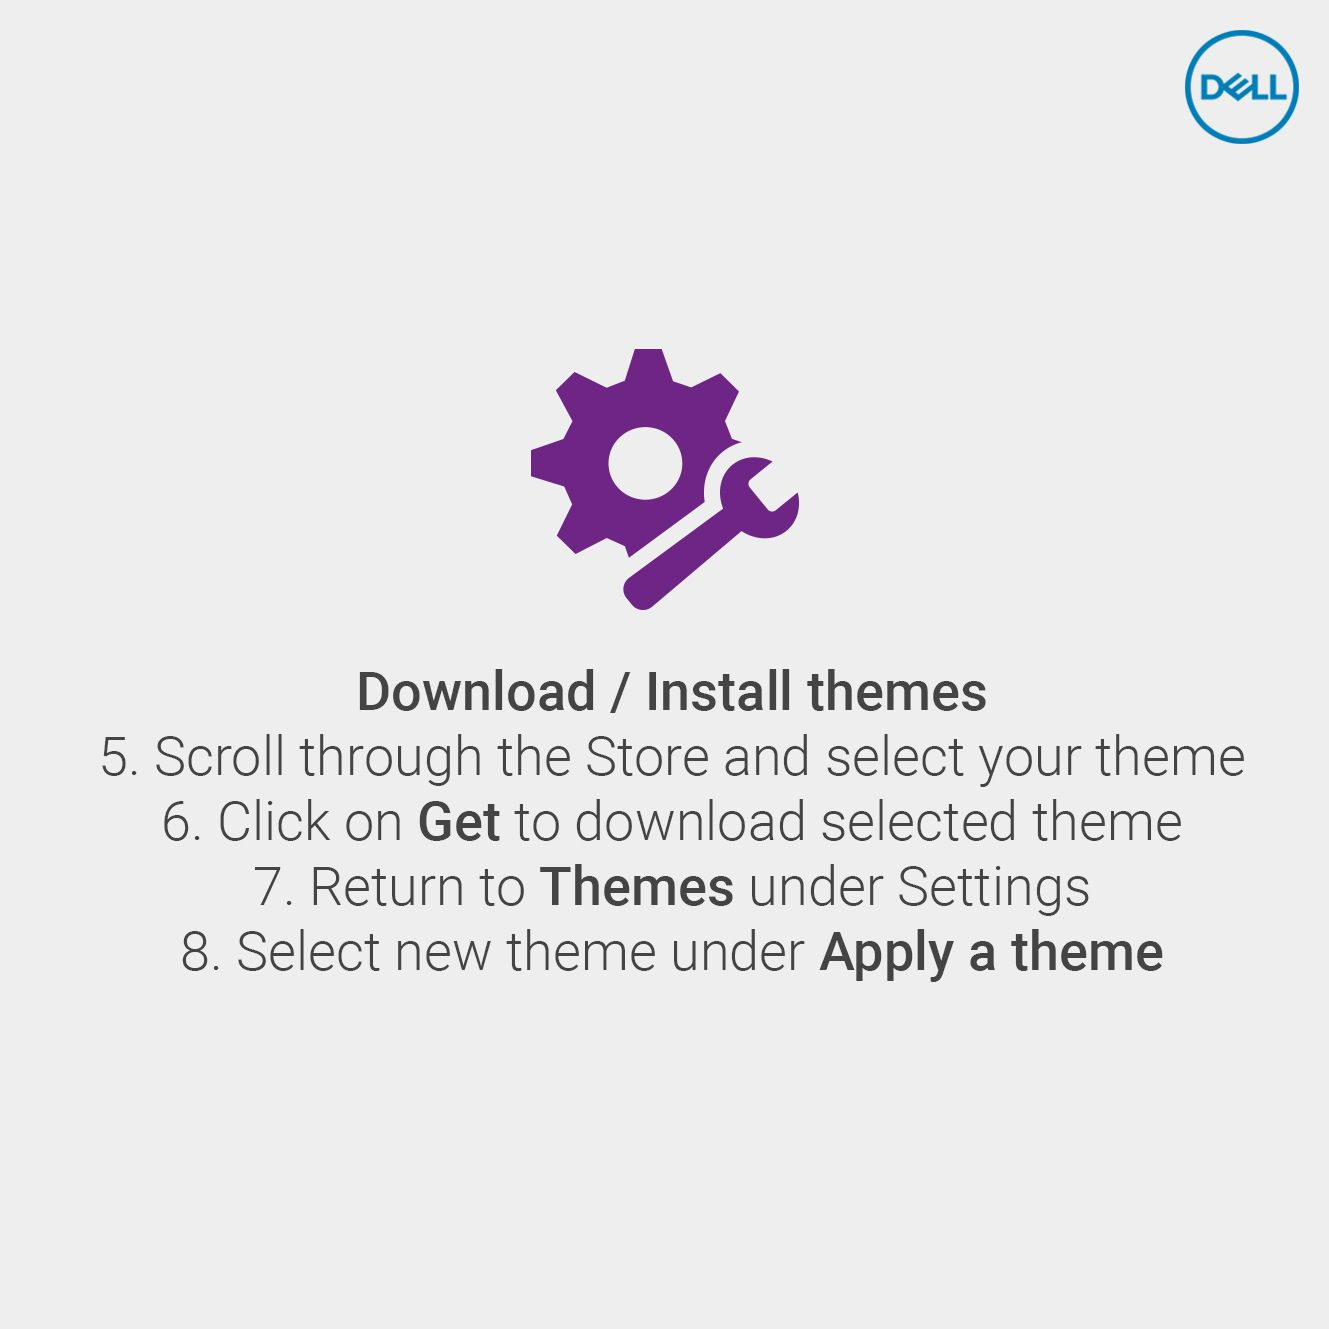 Want To Express Your Personality On Your #Dell #Windows10